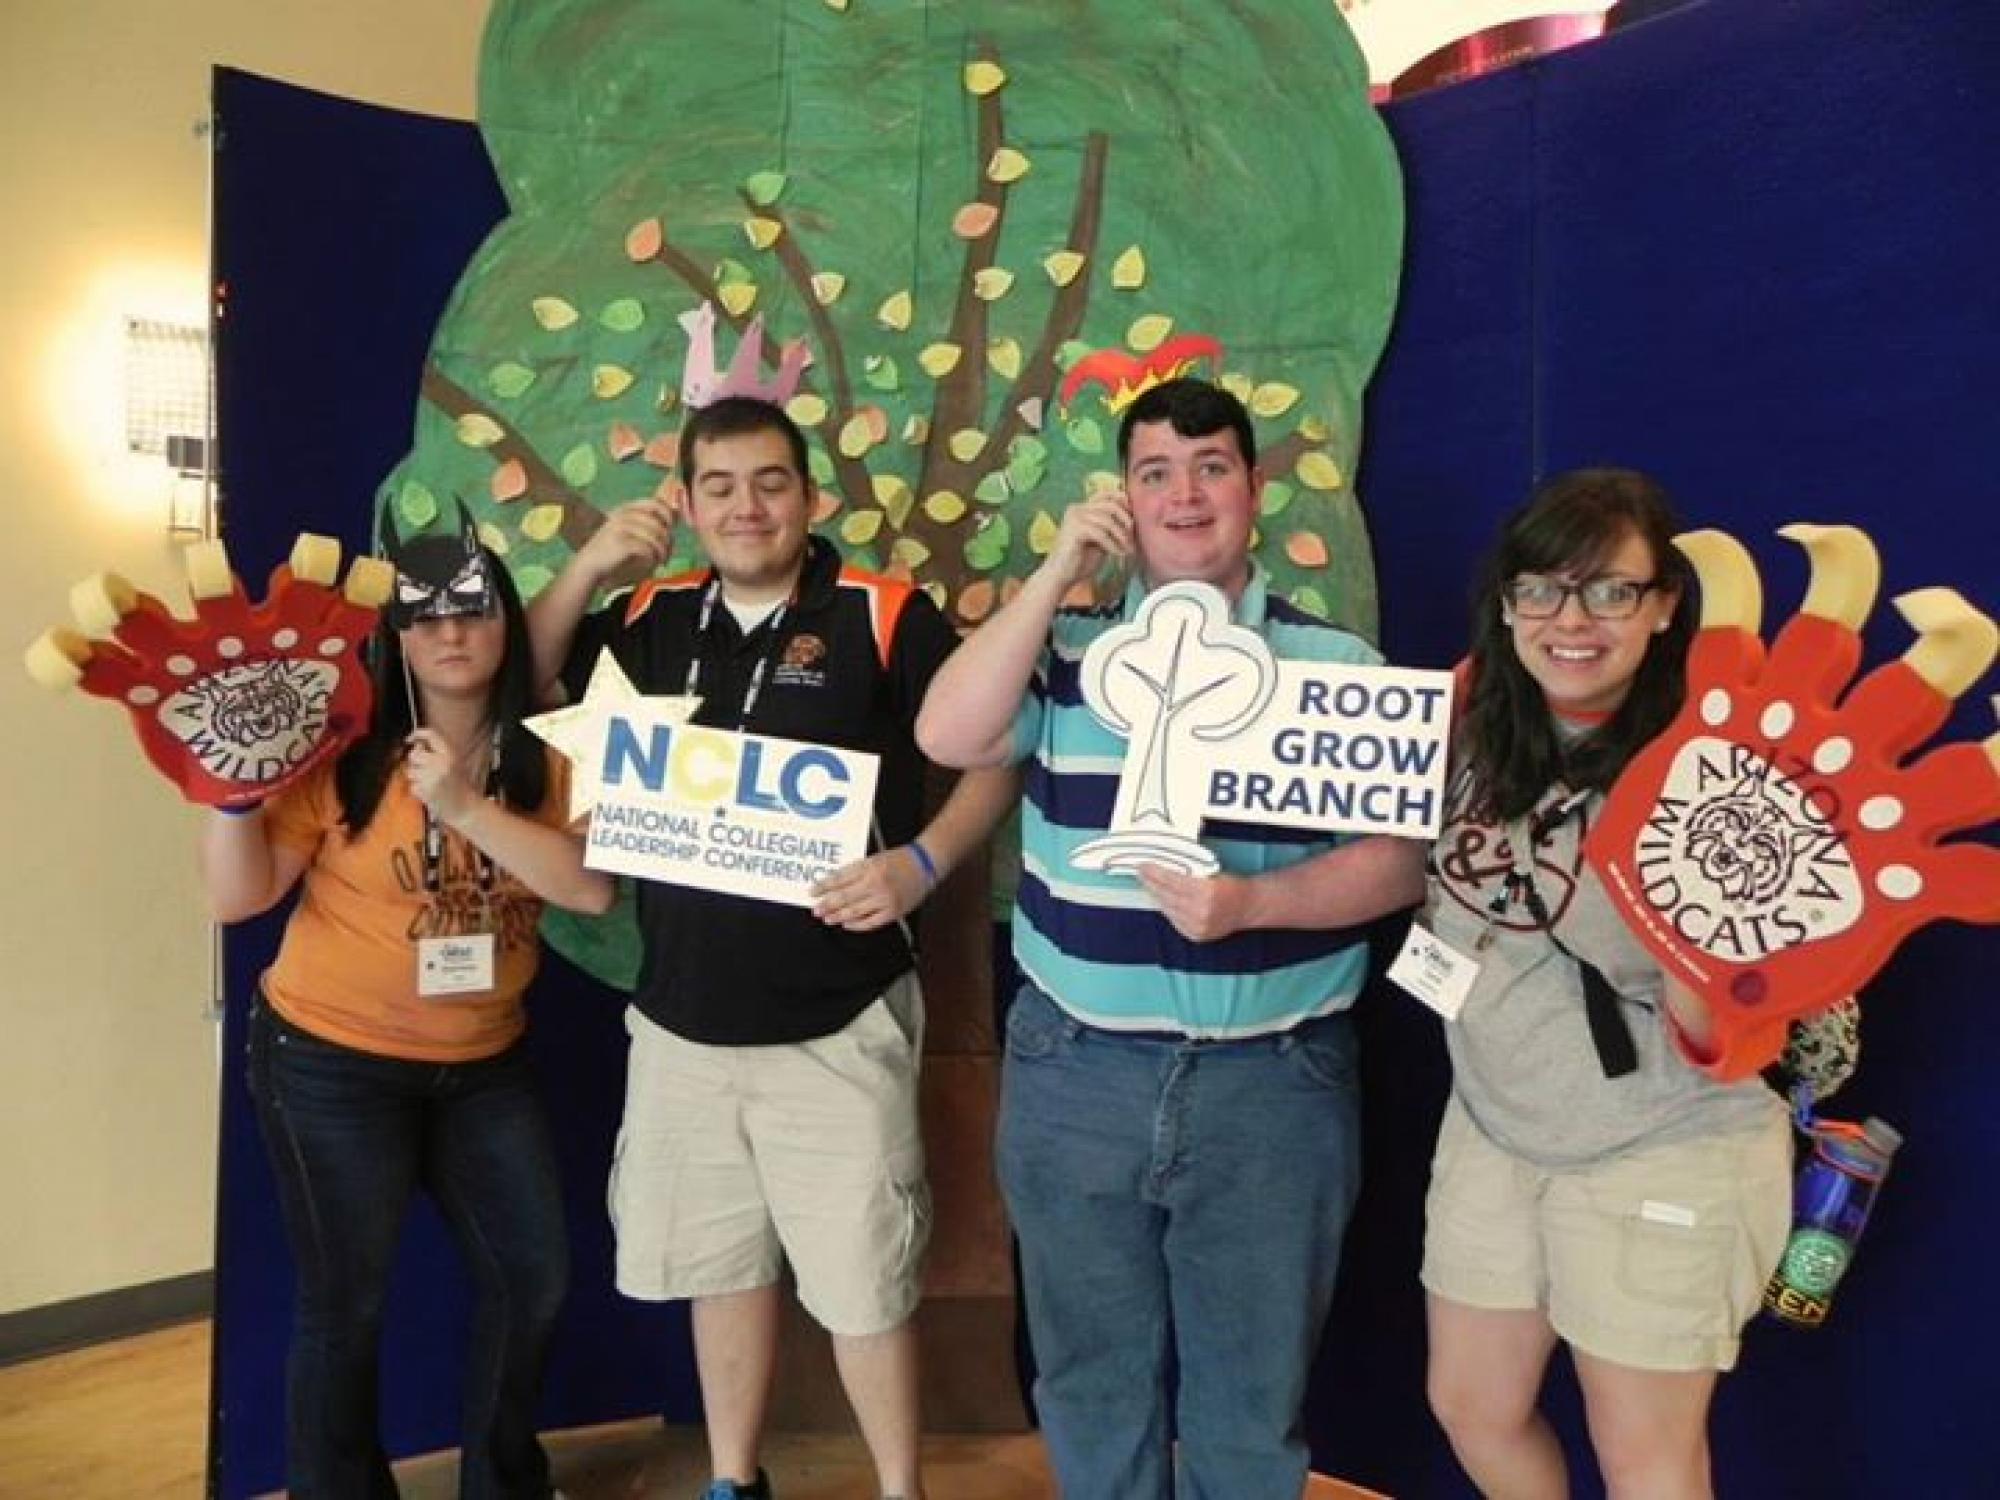 Students were called to write messages and notes about leadership on the conference tree.